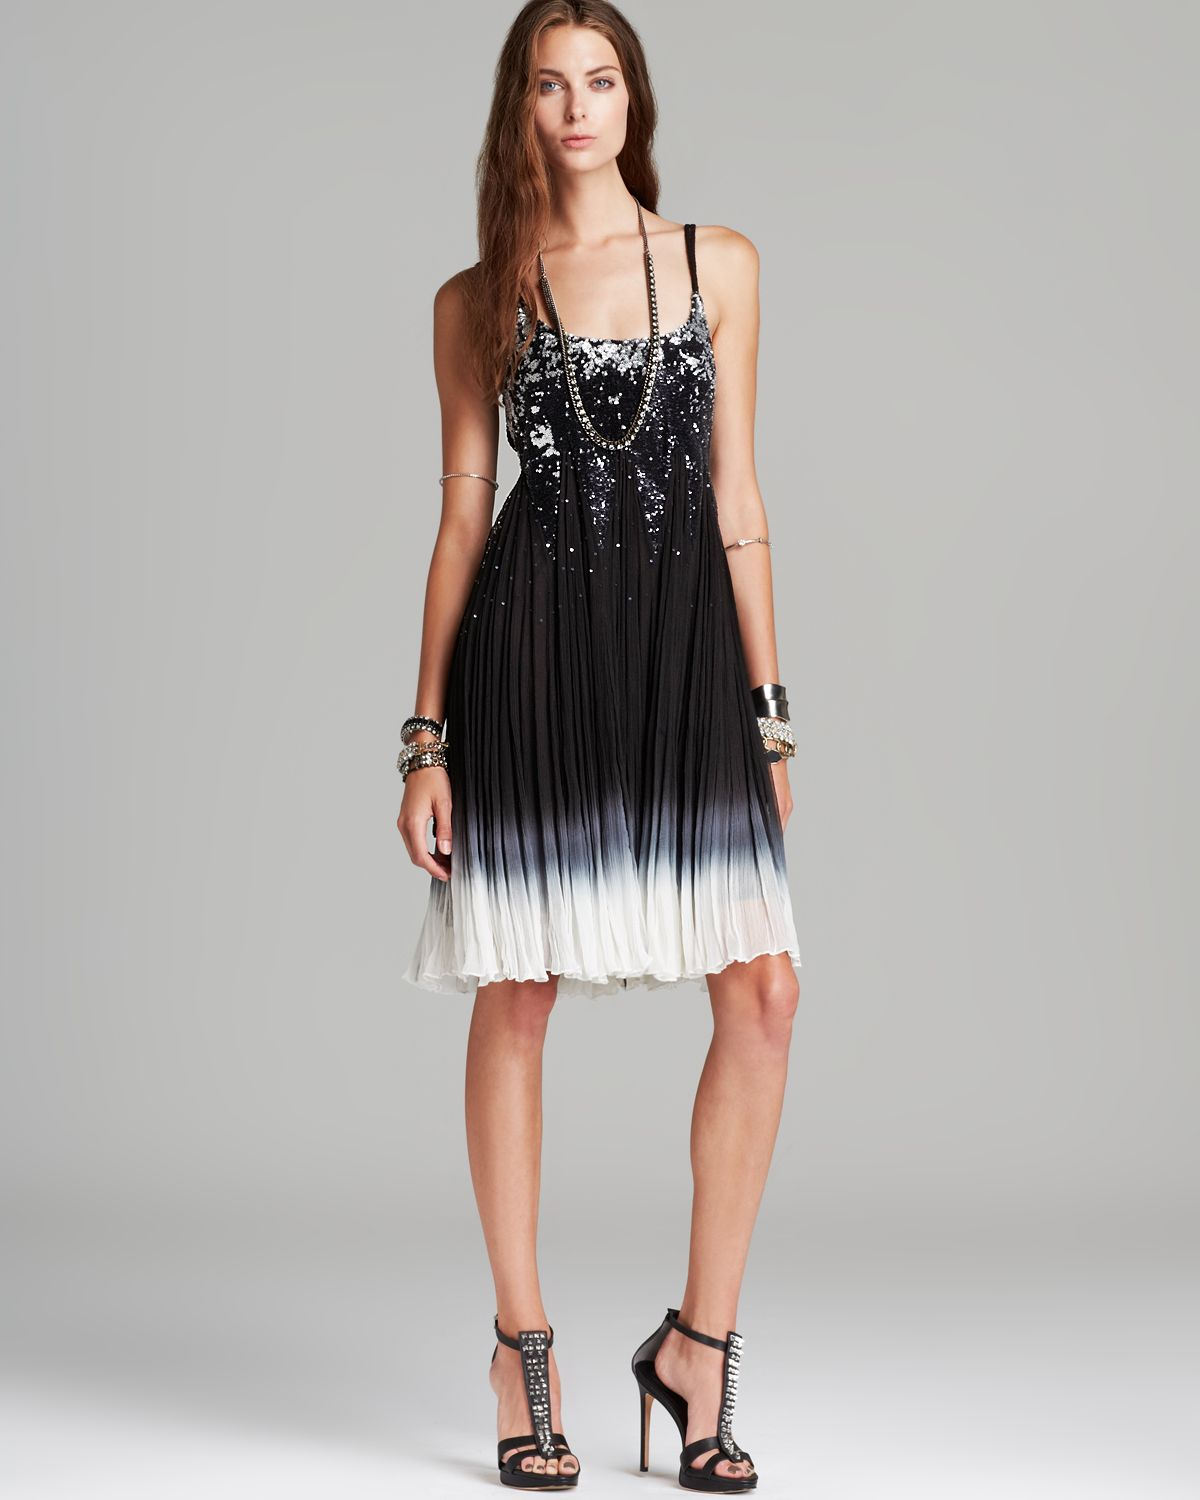 Free people Dress Supernova Sequin in Black - Lyst